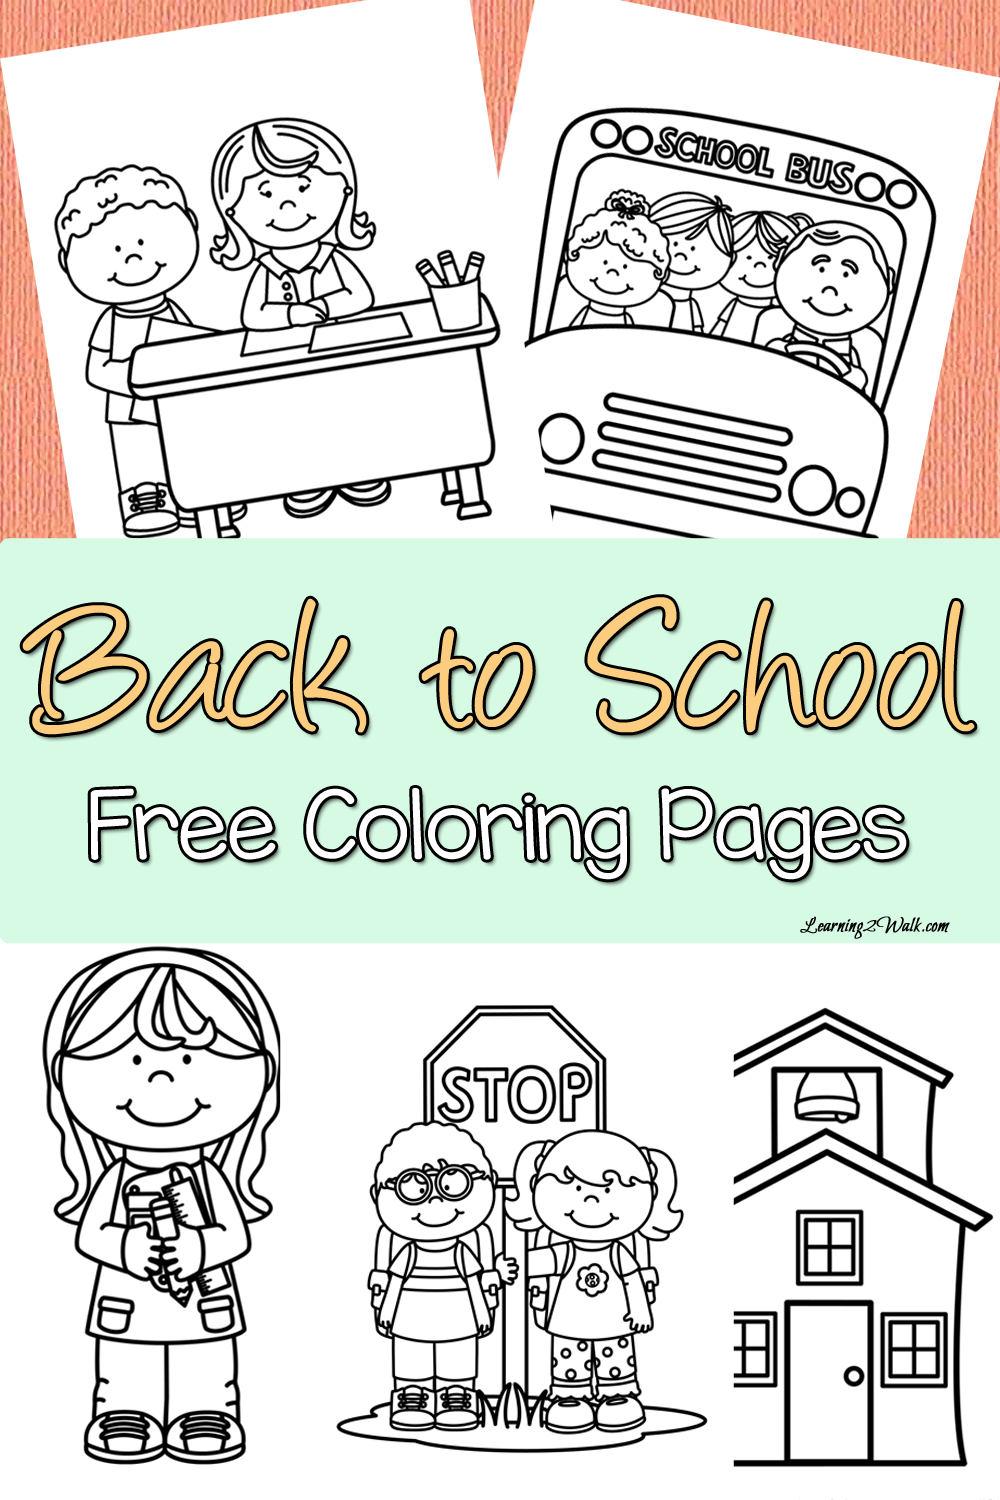 66 Free Coloring Pages School Theme Images & Pictures In HD